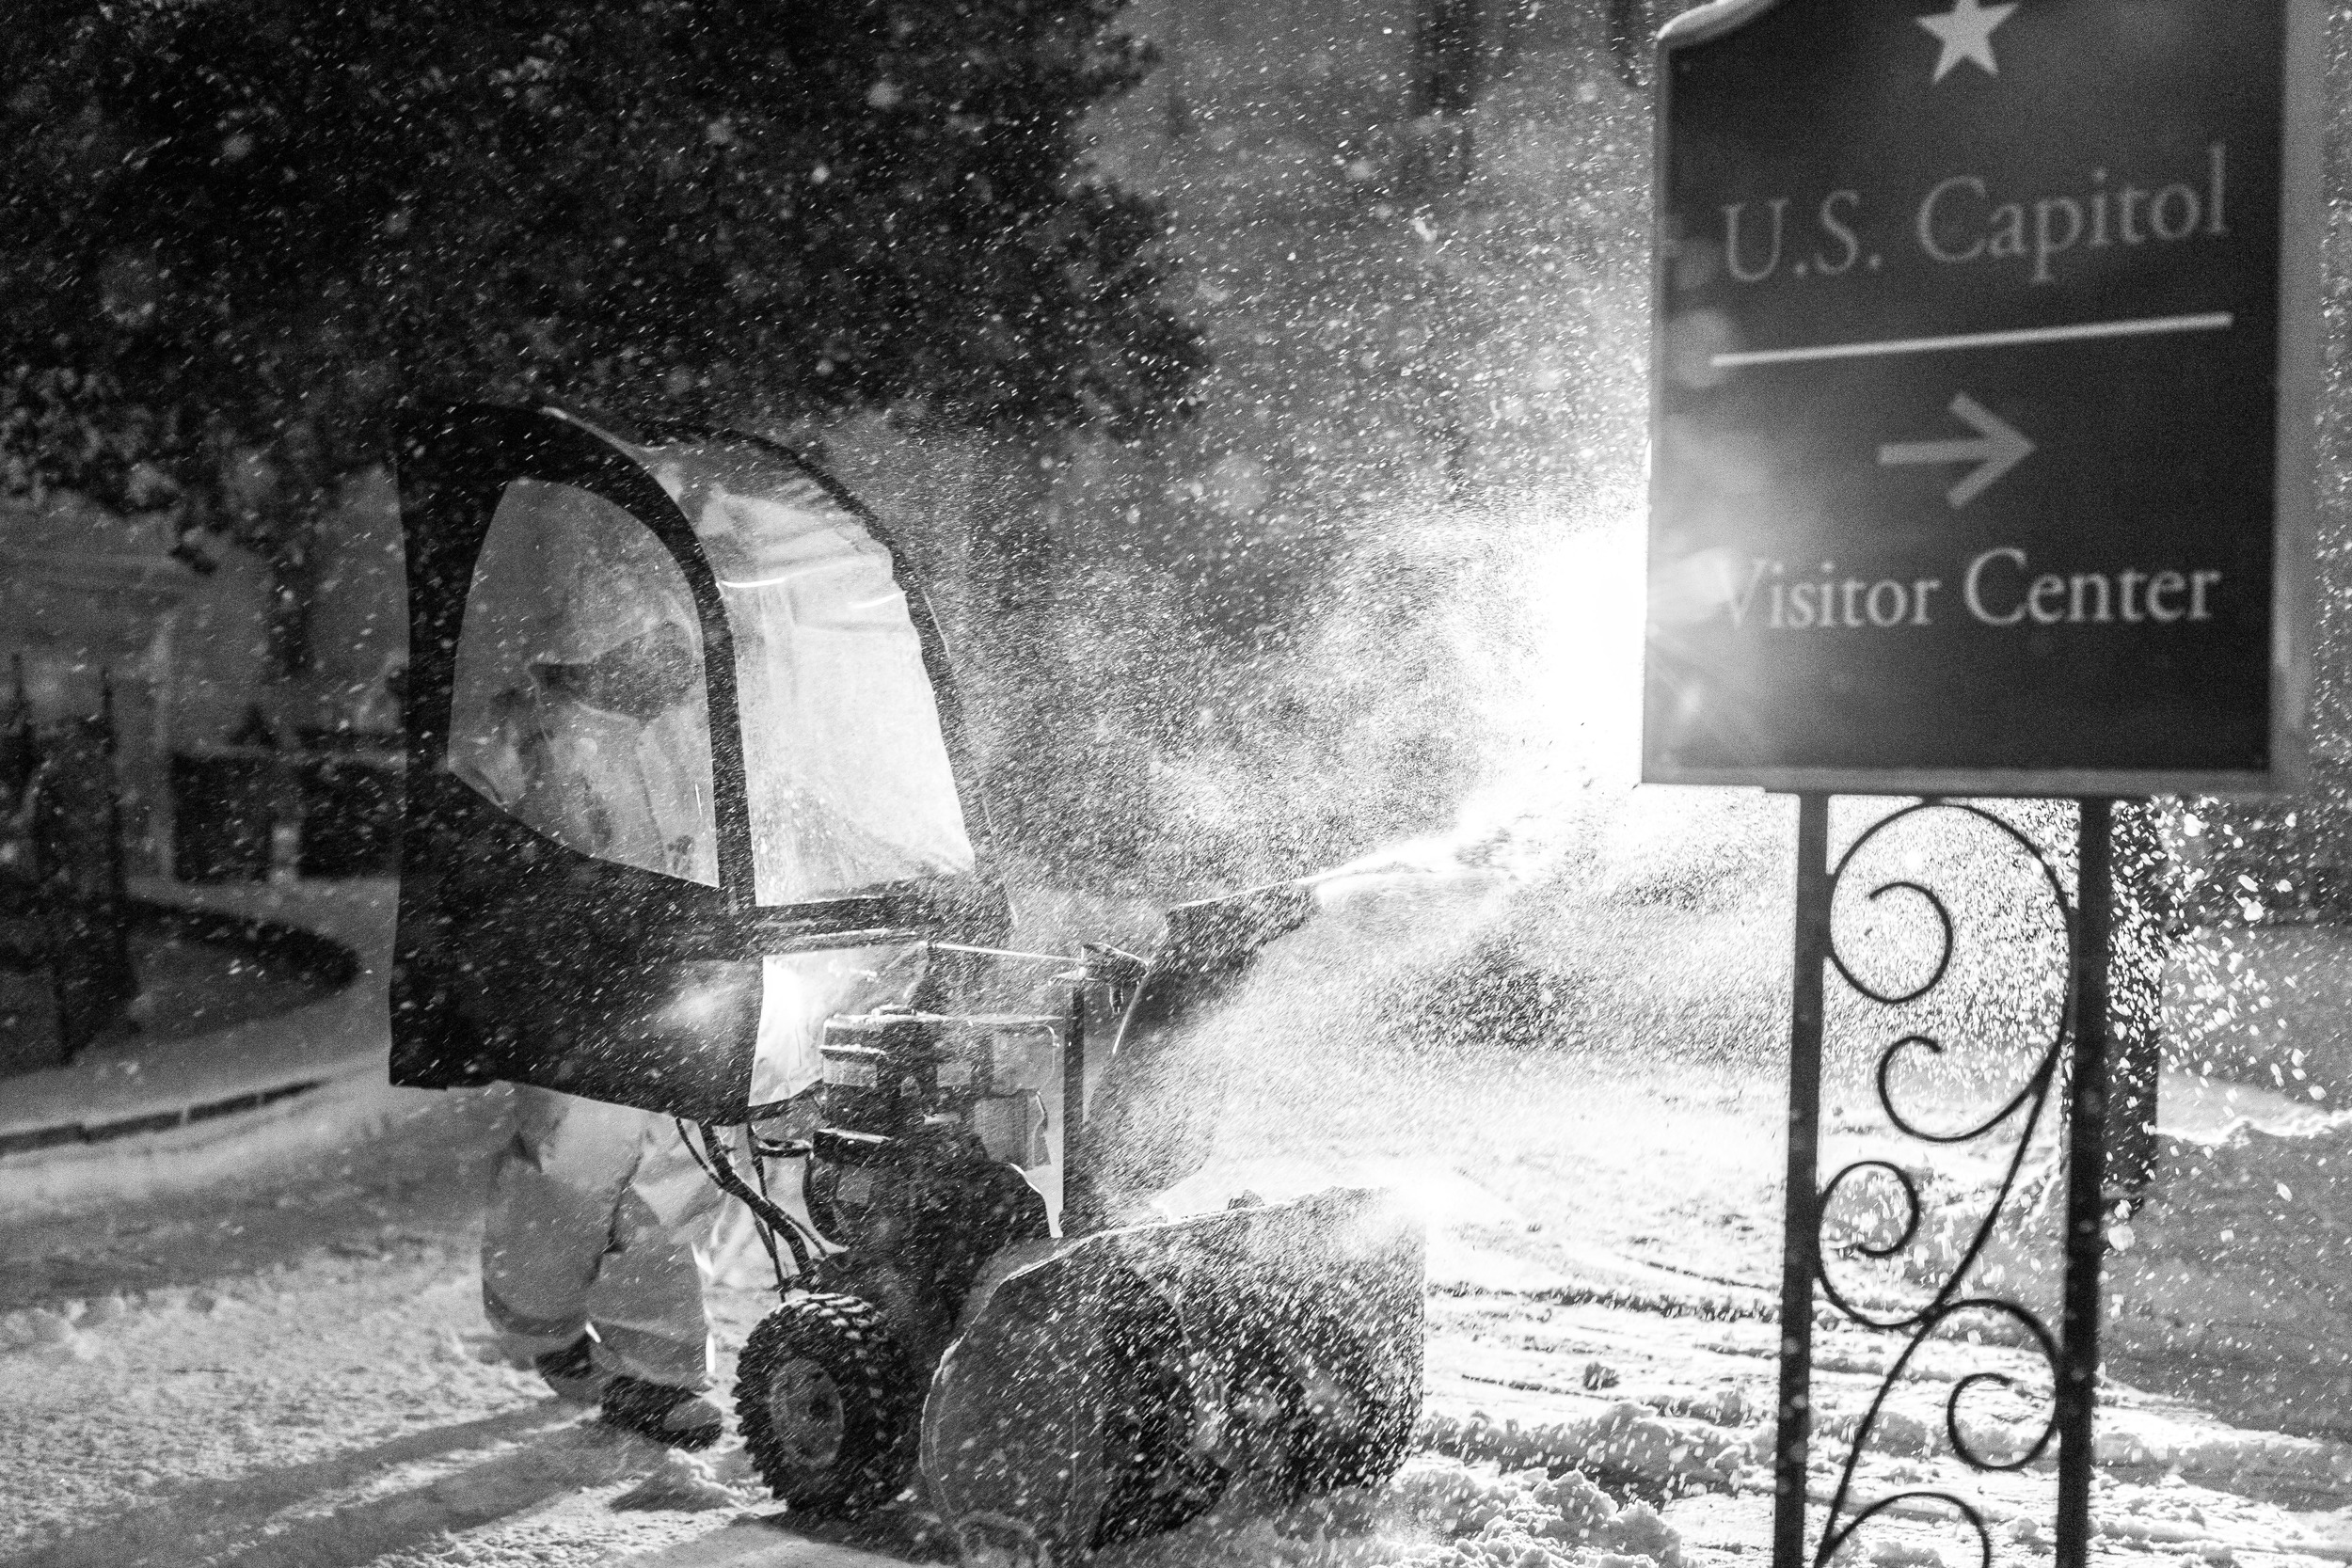 Snow clearing near the Capitol.